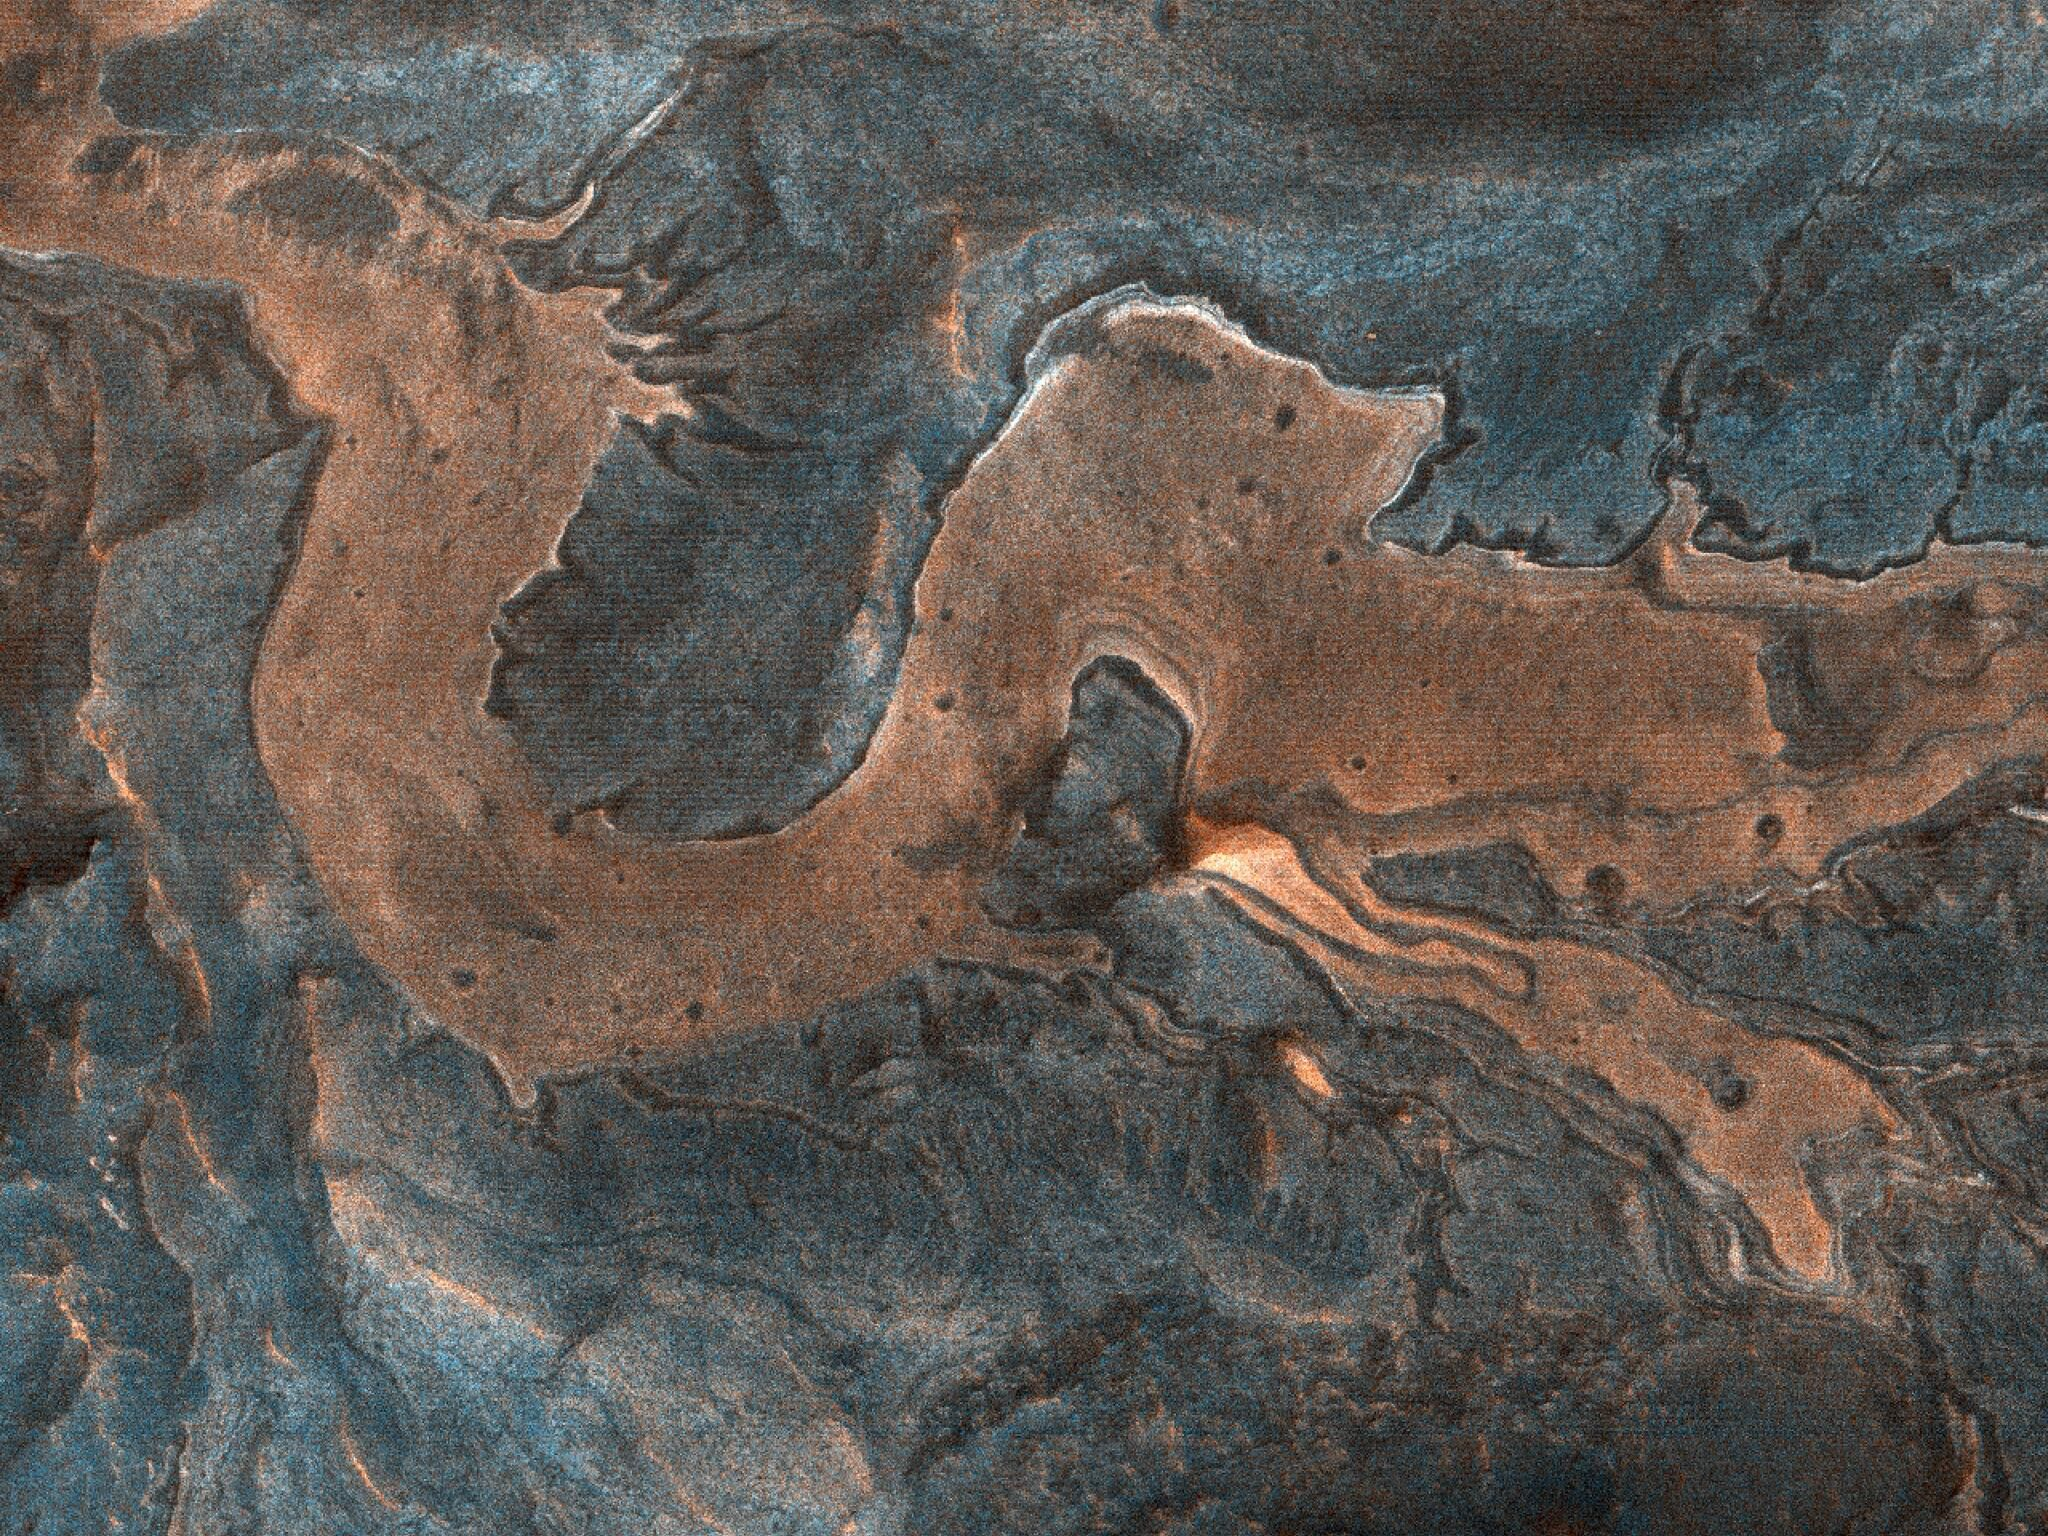 NASA imagines a dragon on Mars in a sinuous, scenic canyon